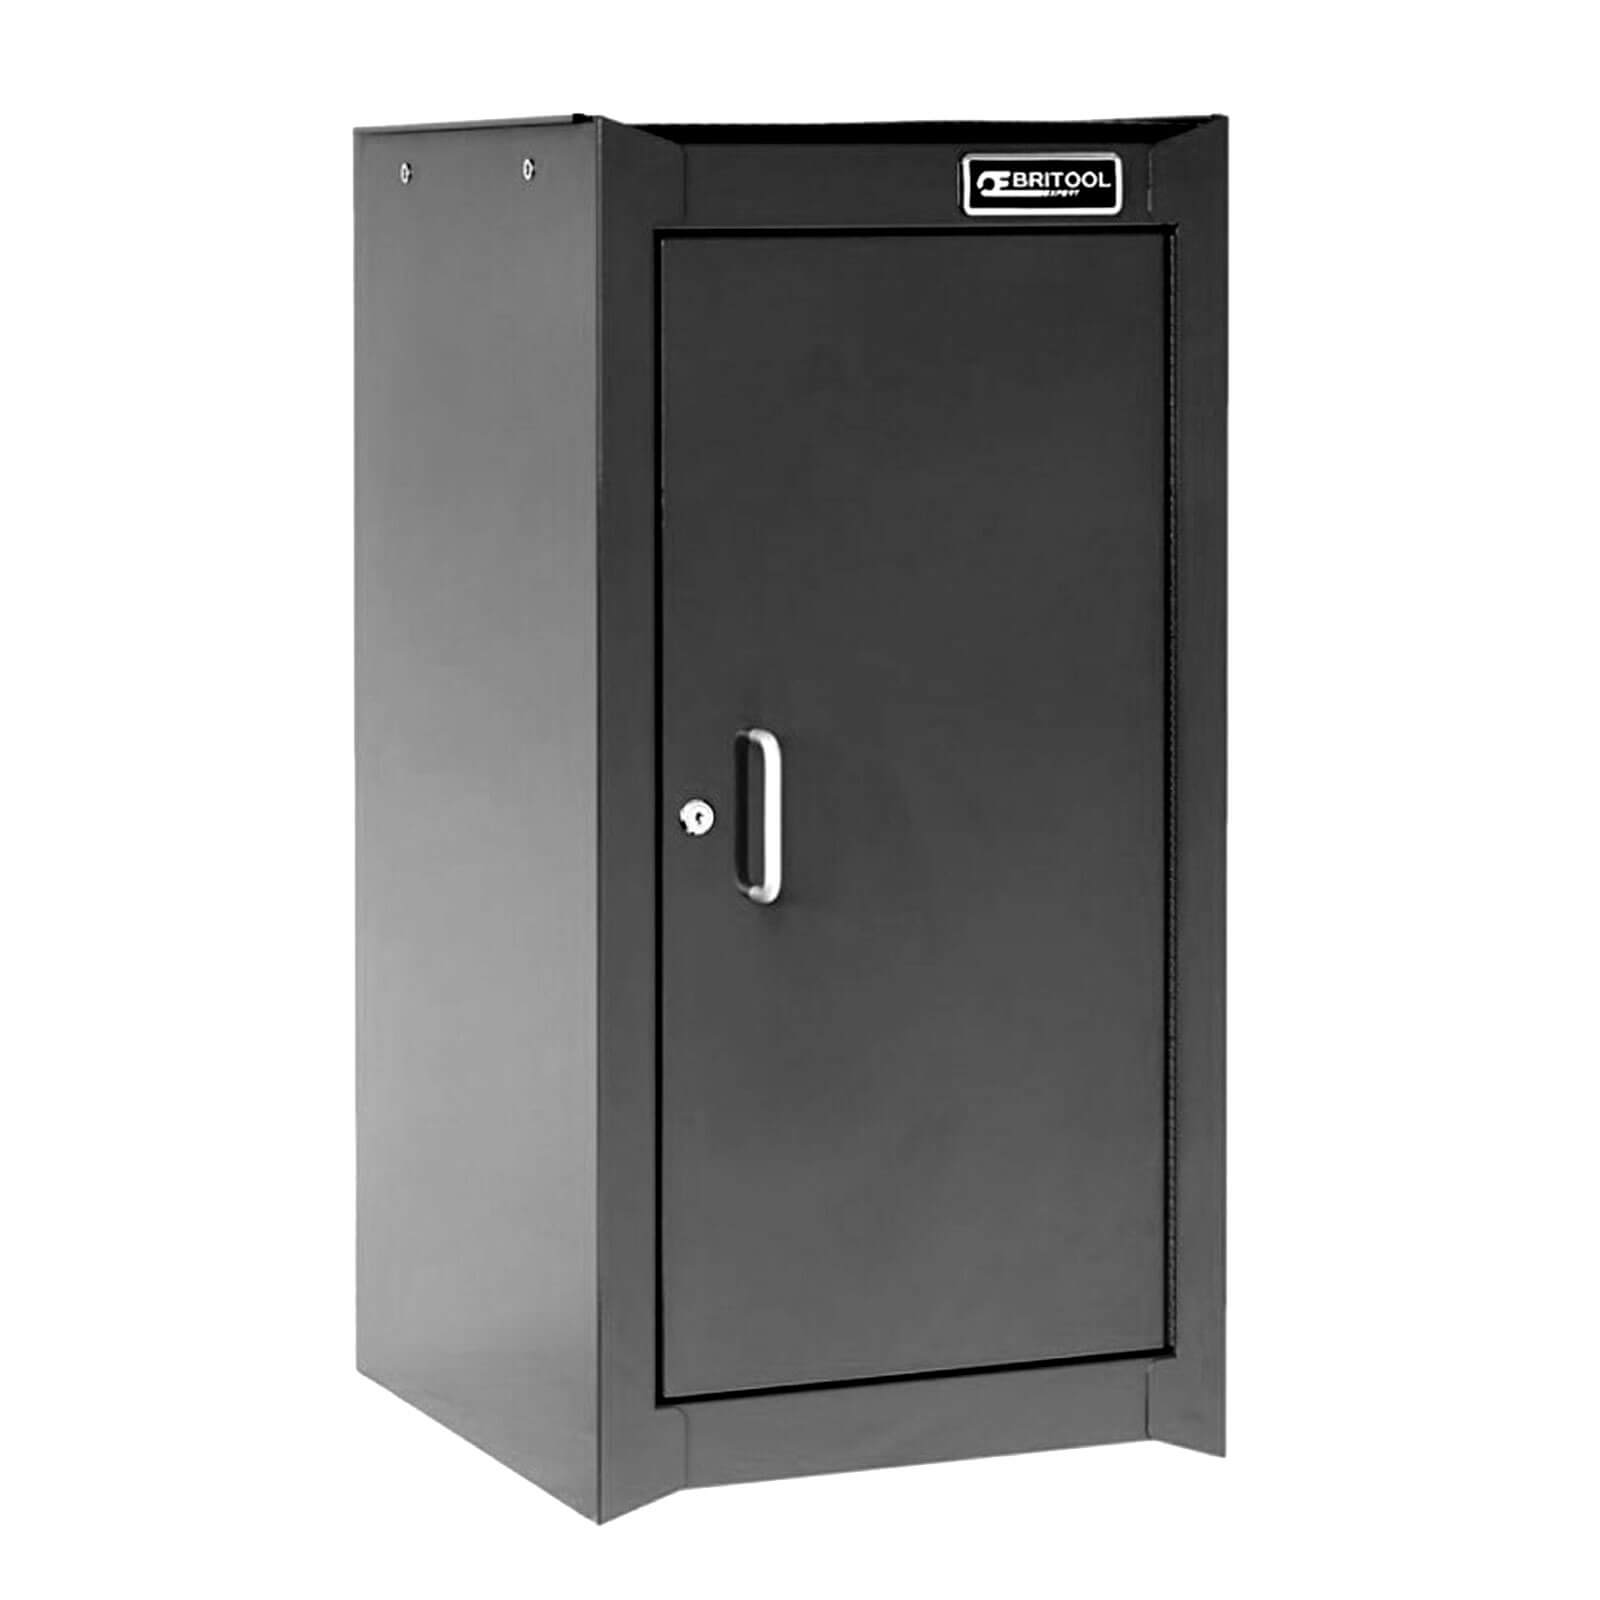 Image of Britool Heavy Duty Lockable Tool Cabinet Black